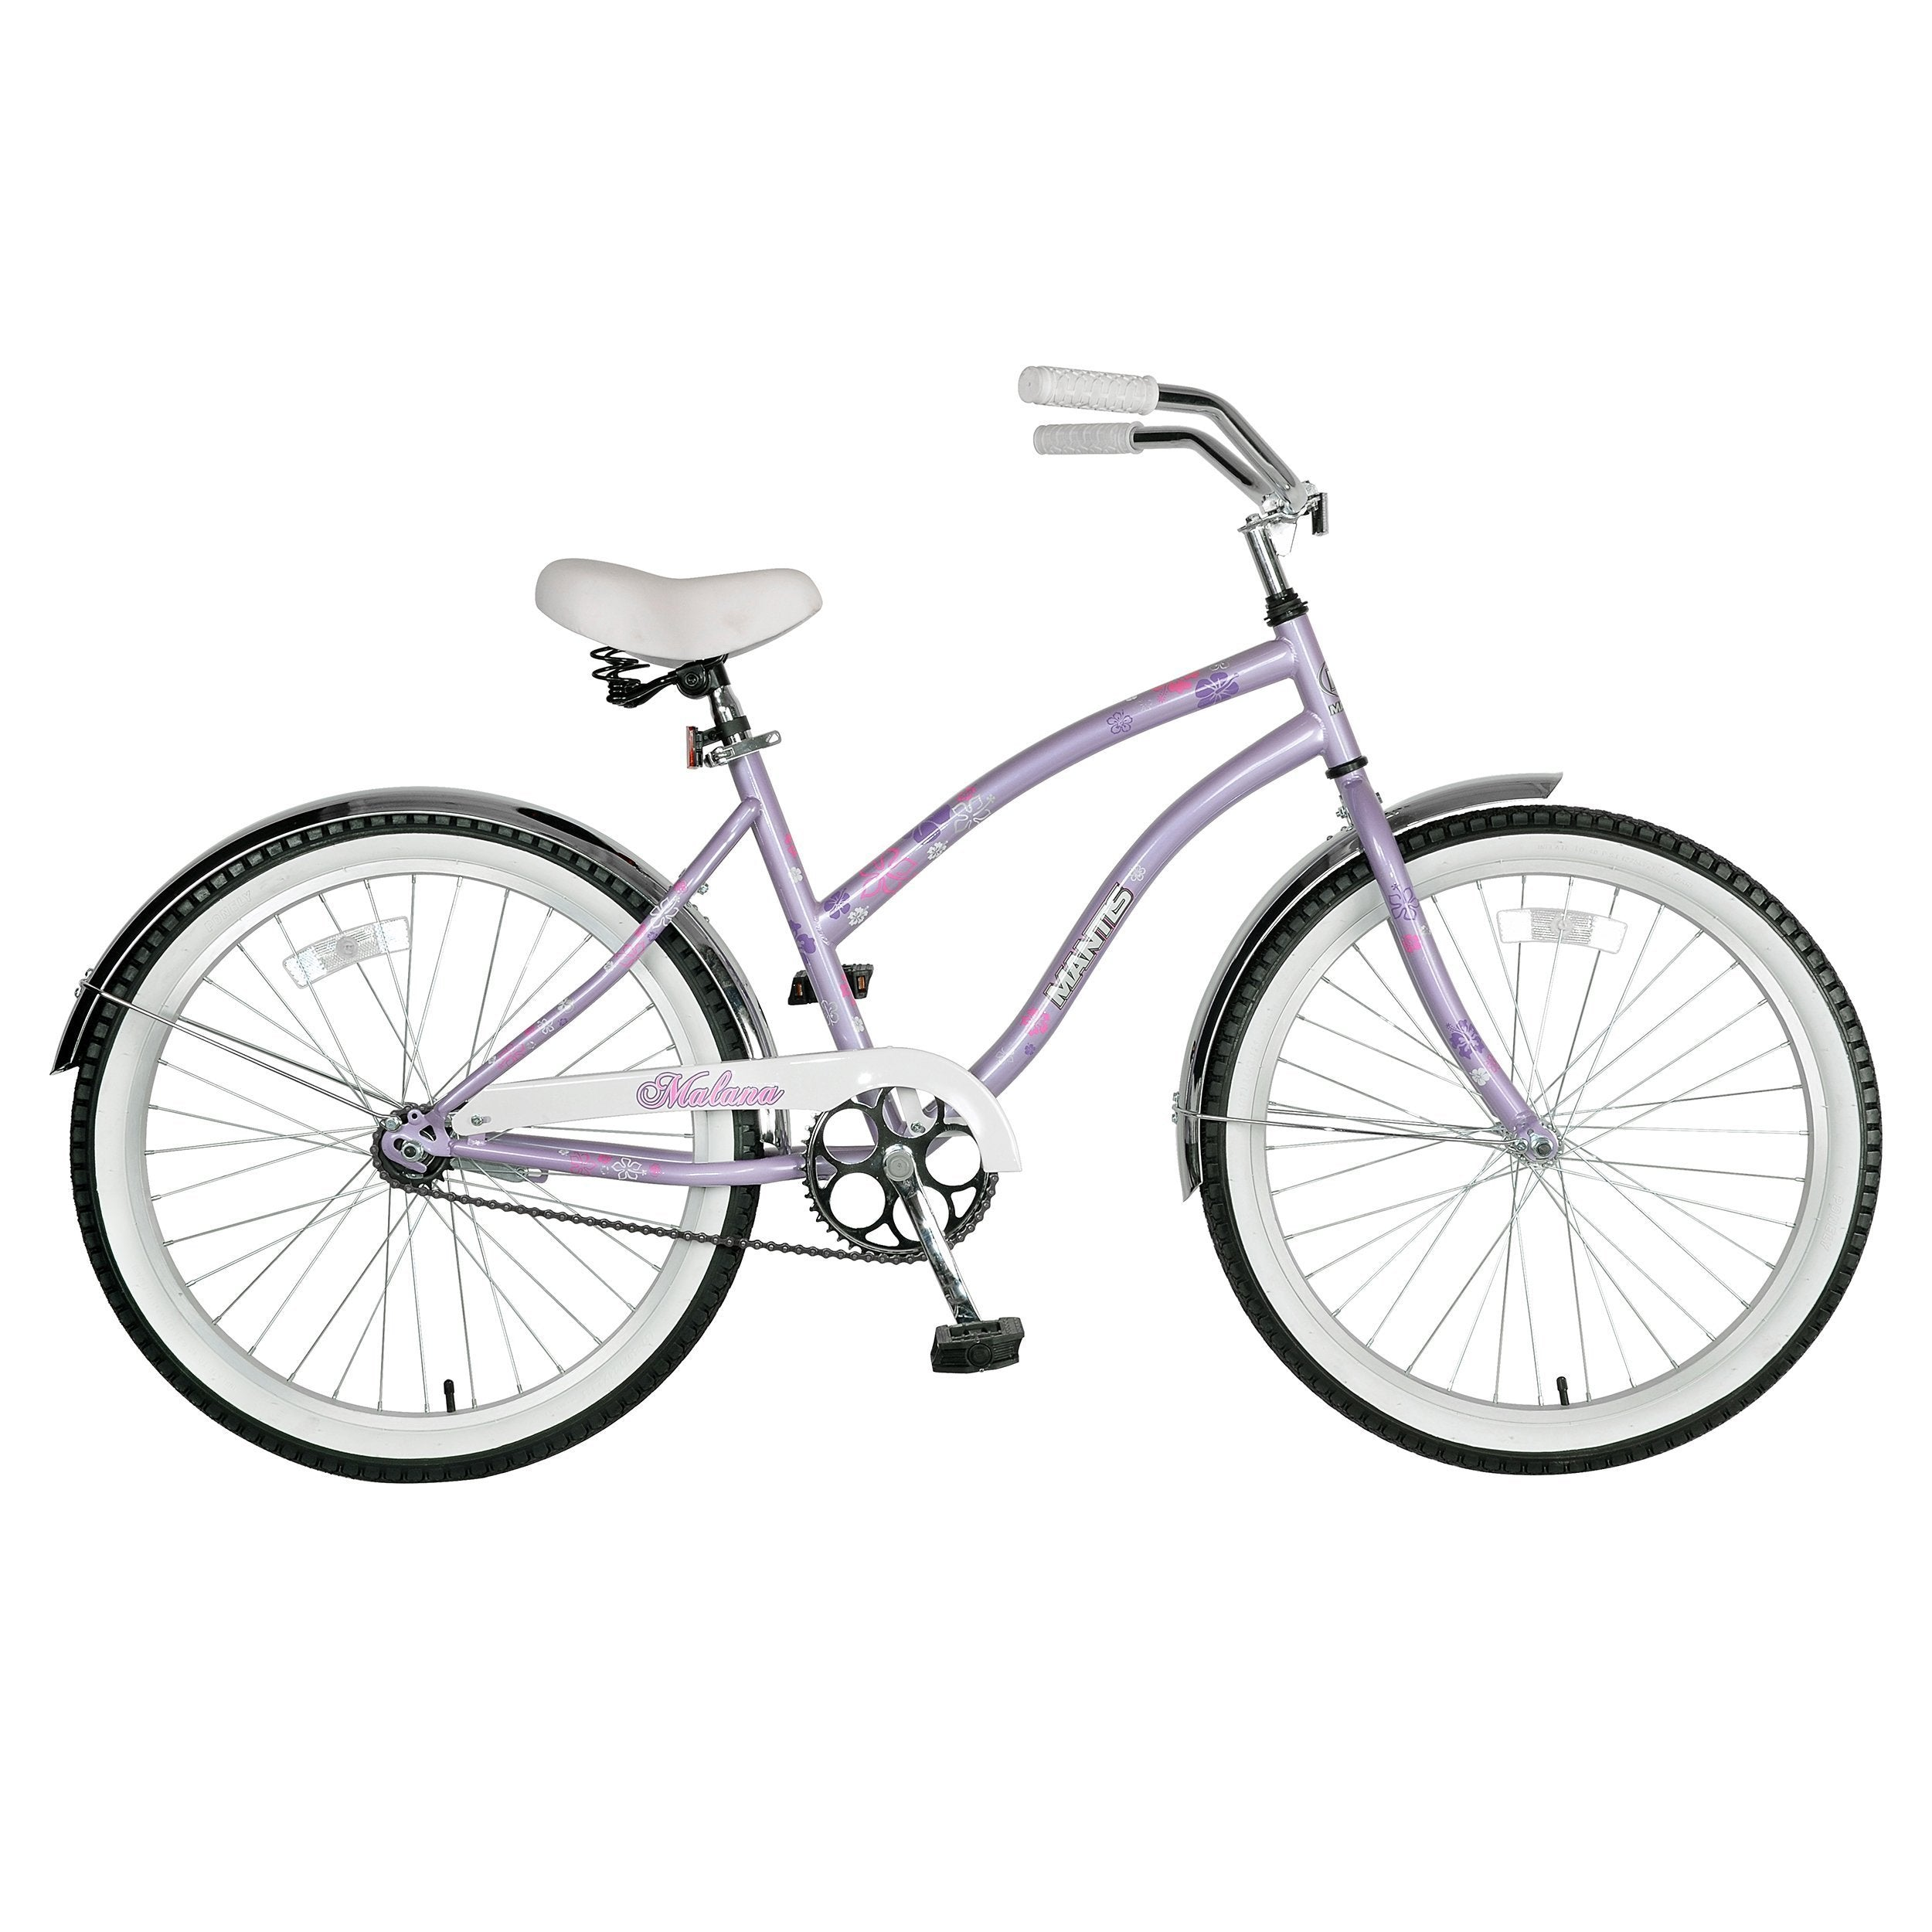 Mantis Malana Single Speed 24-Inch Ladies Cruiser Bicycle - Bicycle Ridetique.com